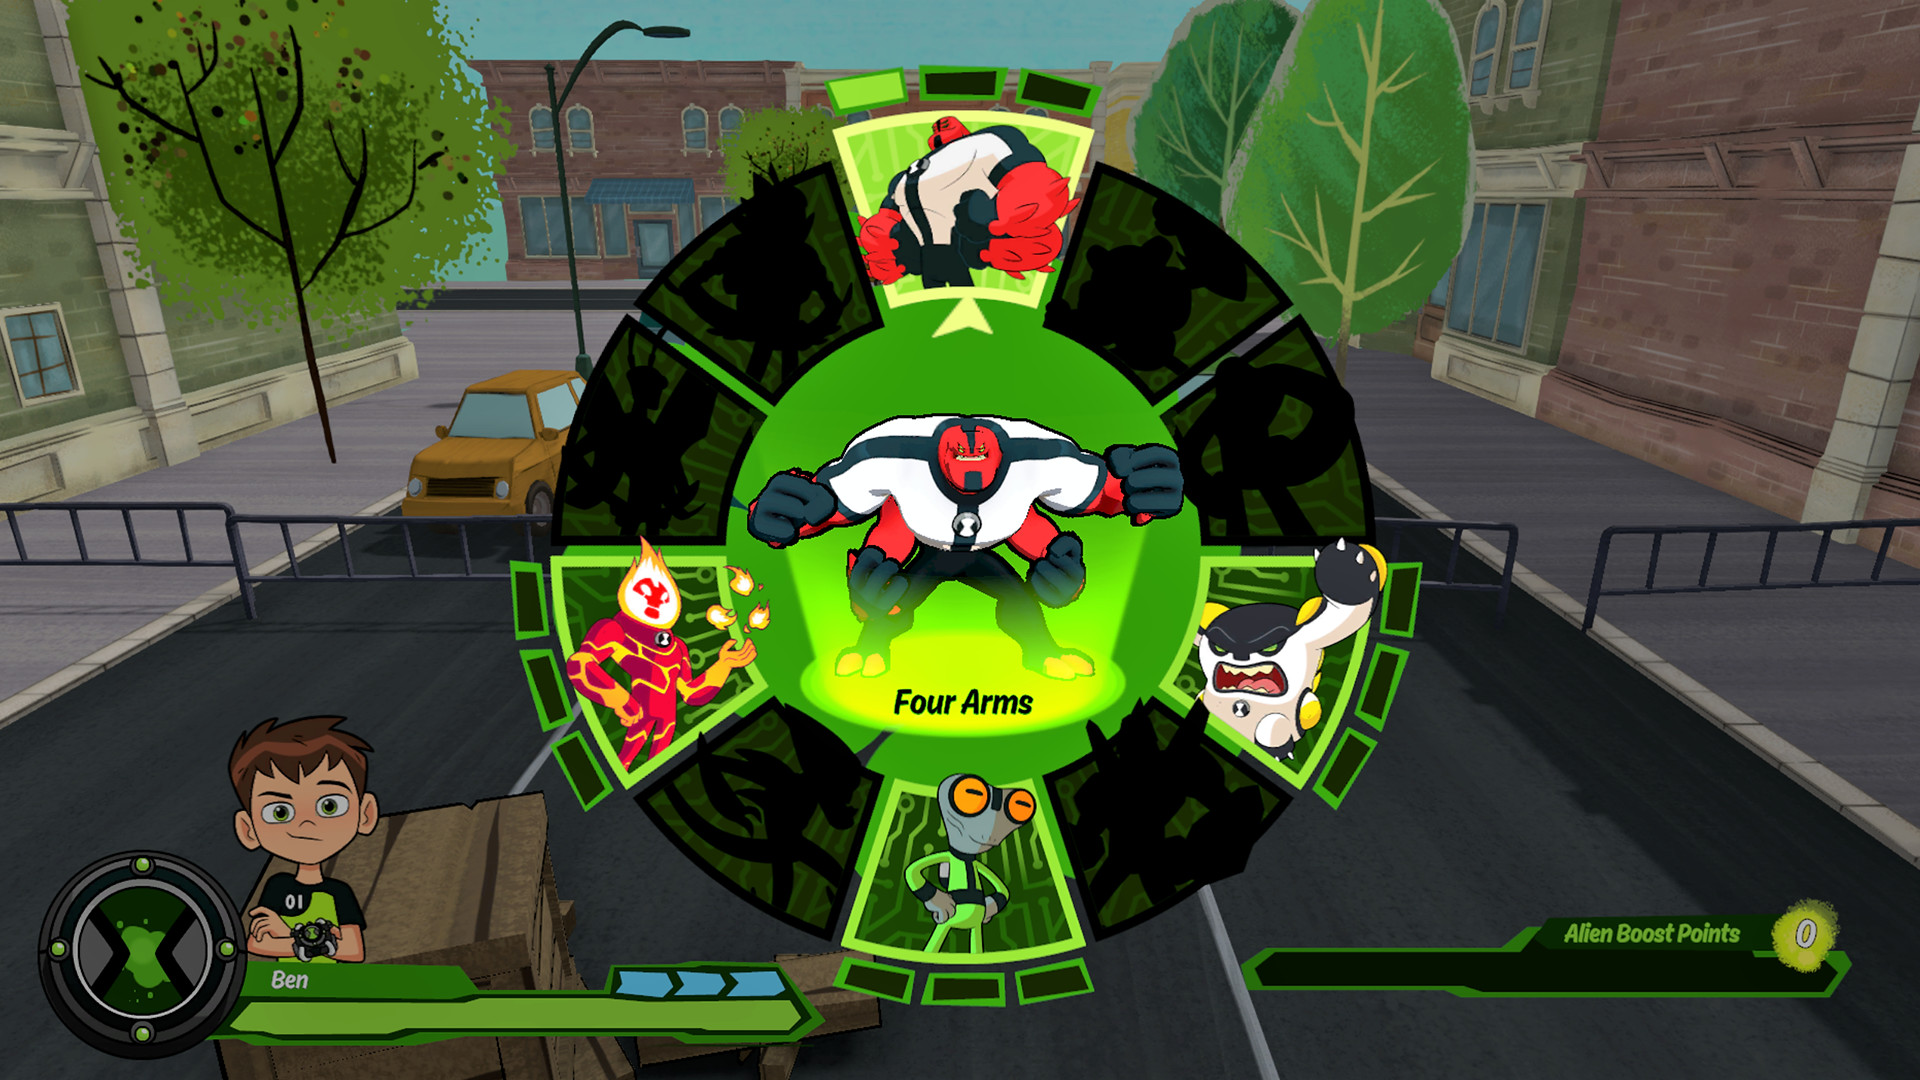 Ben 10 Games | Play All Ben 10 Games Online for Free